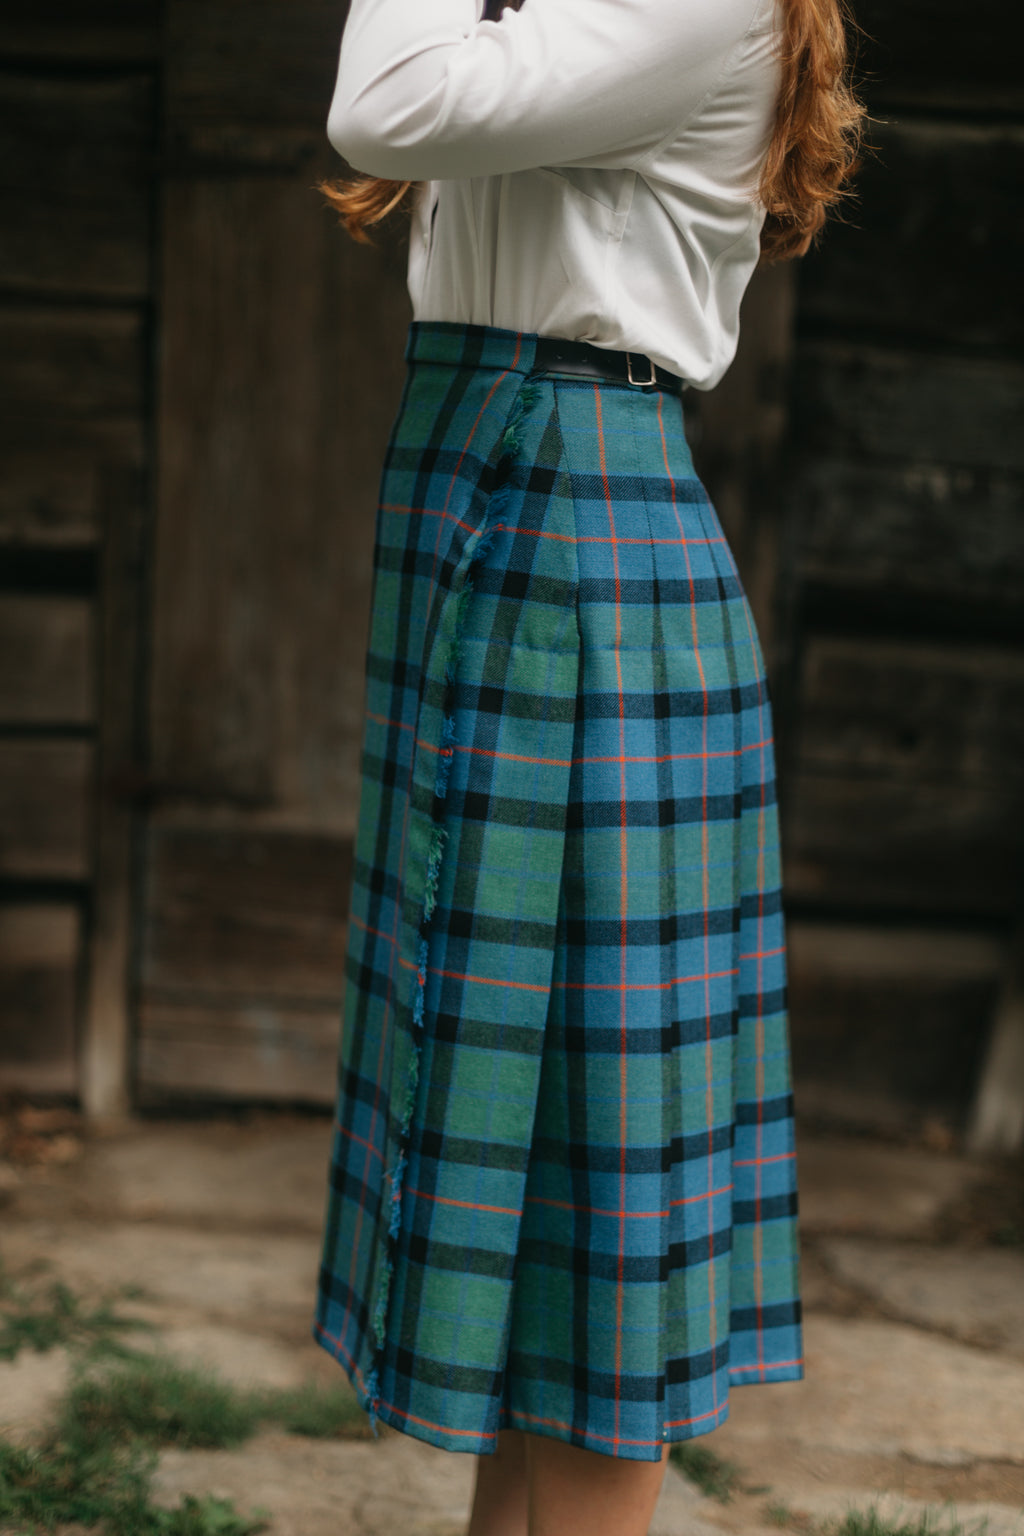 Fabric Suggestions for 152 Scottish Kilts